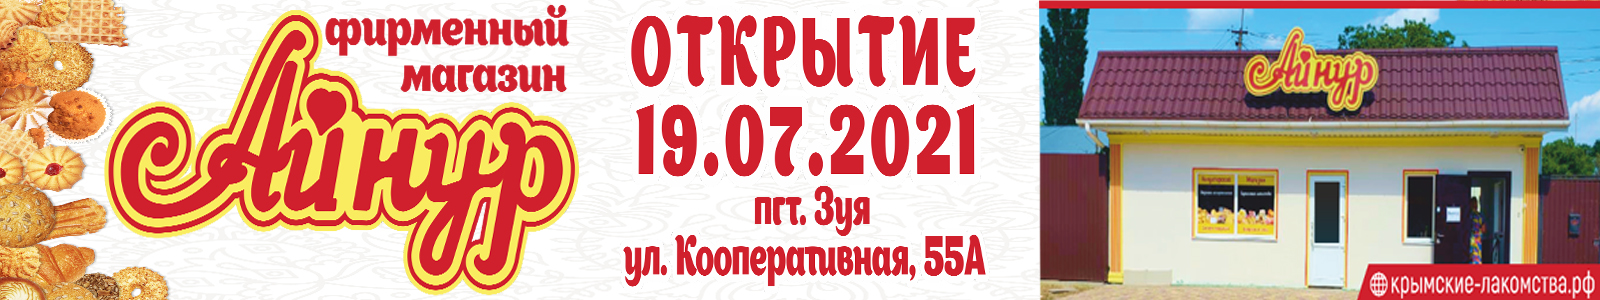 banner-opening-920h360-7-1600x300